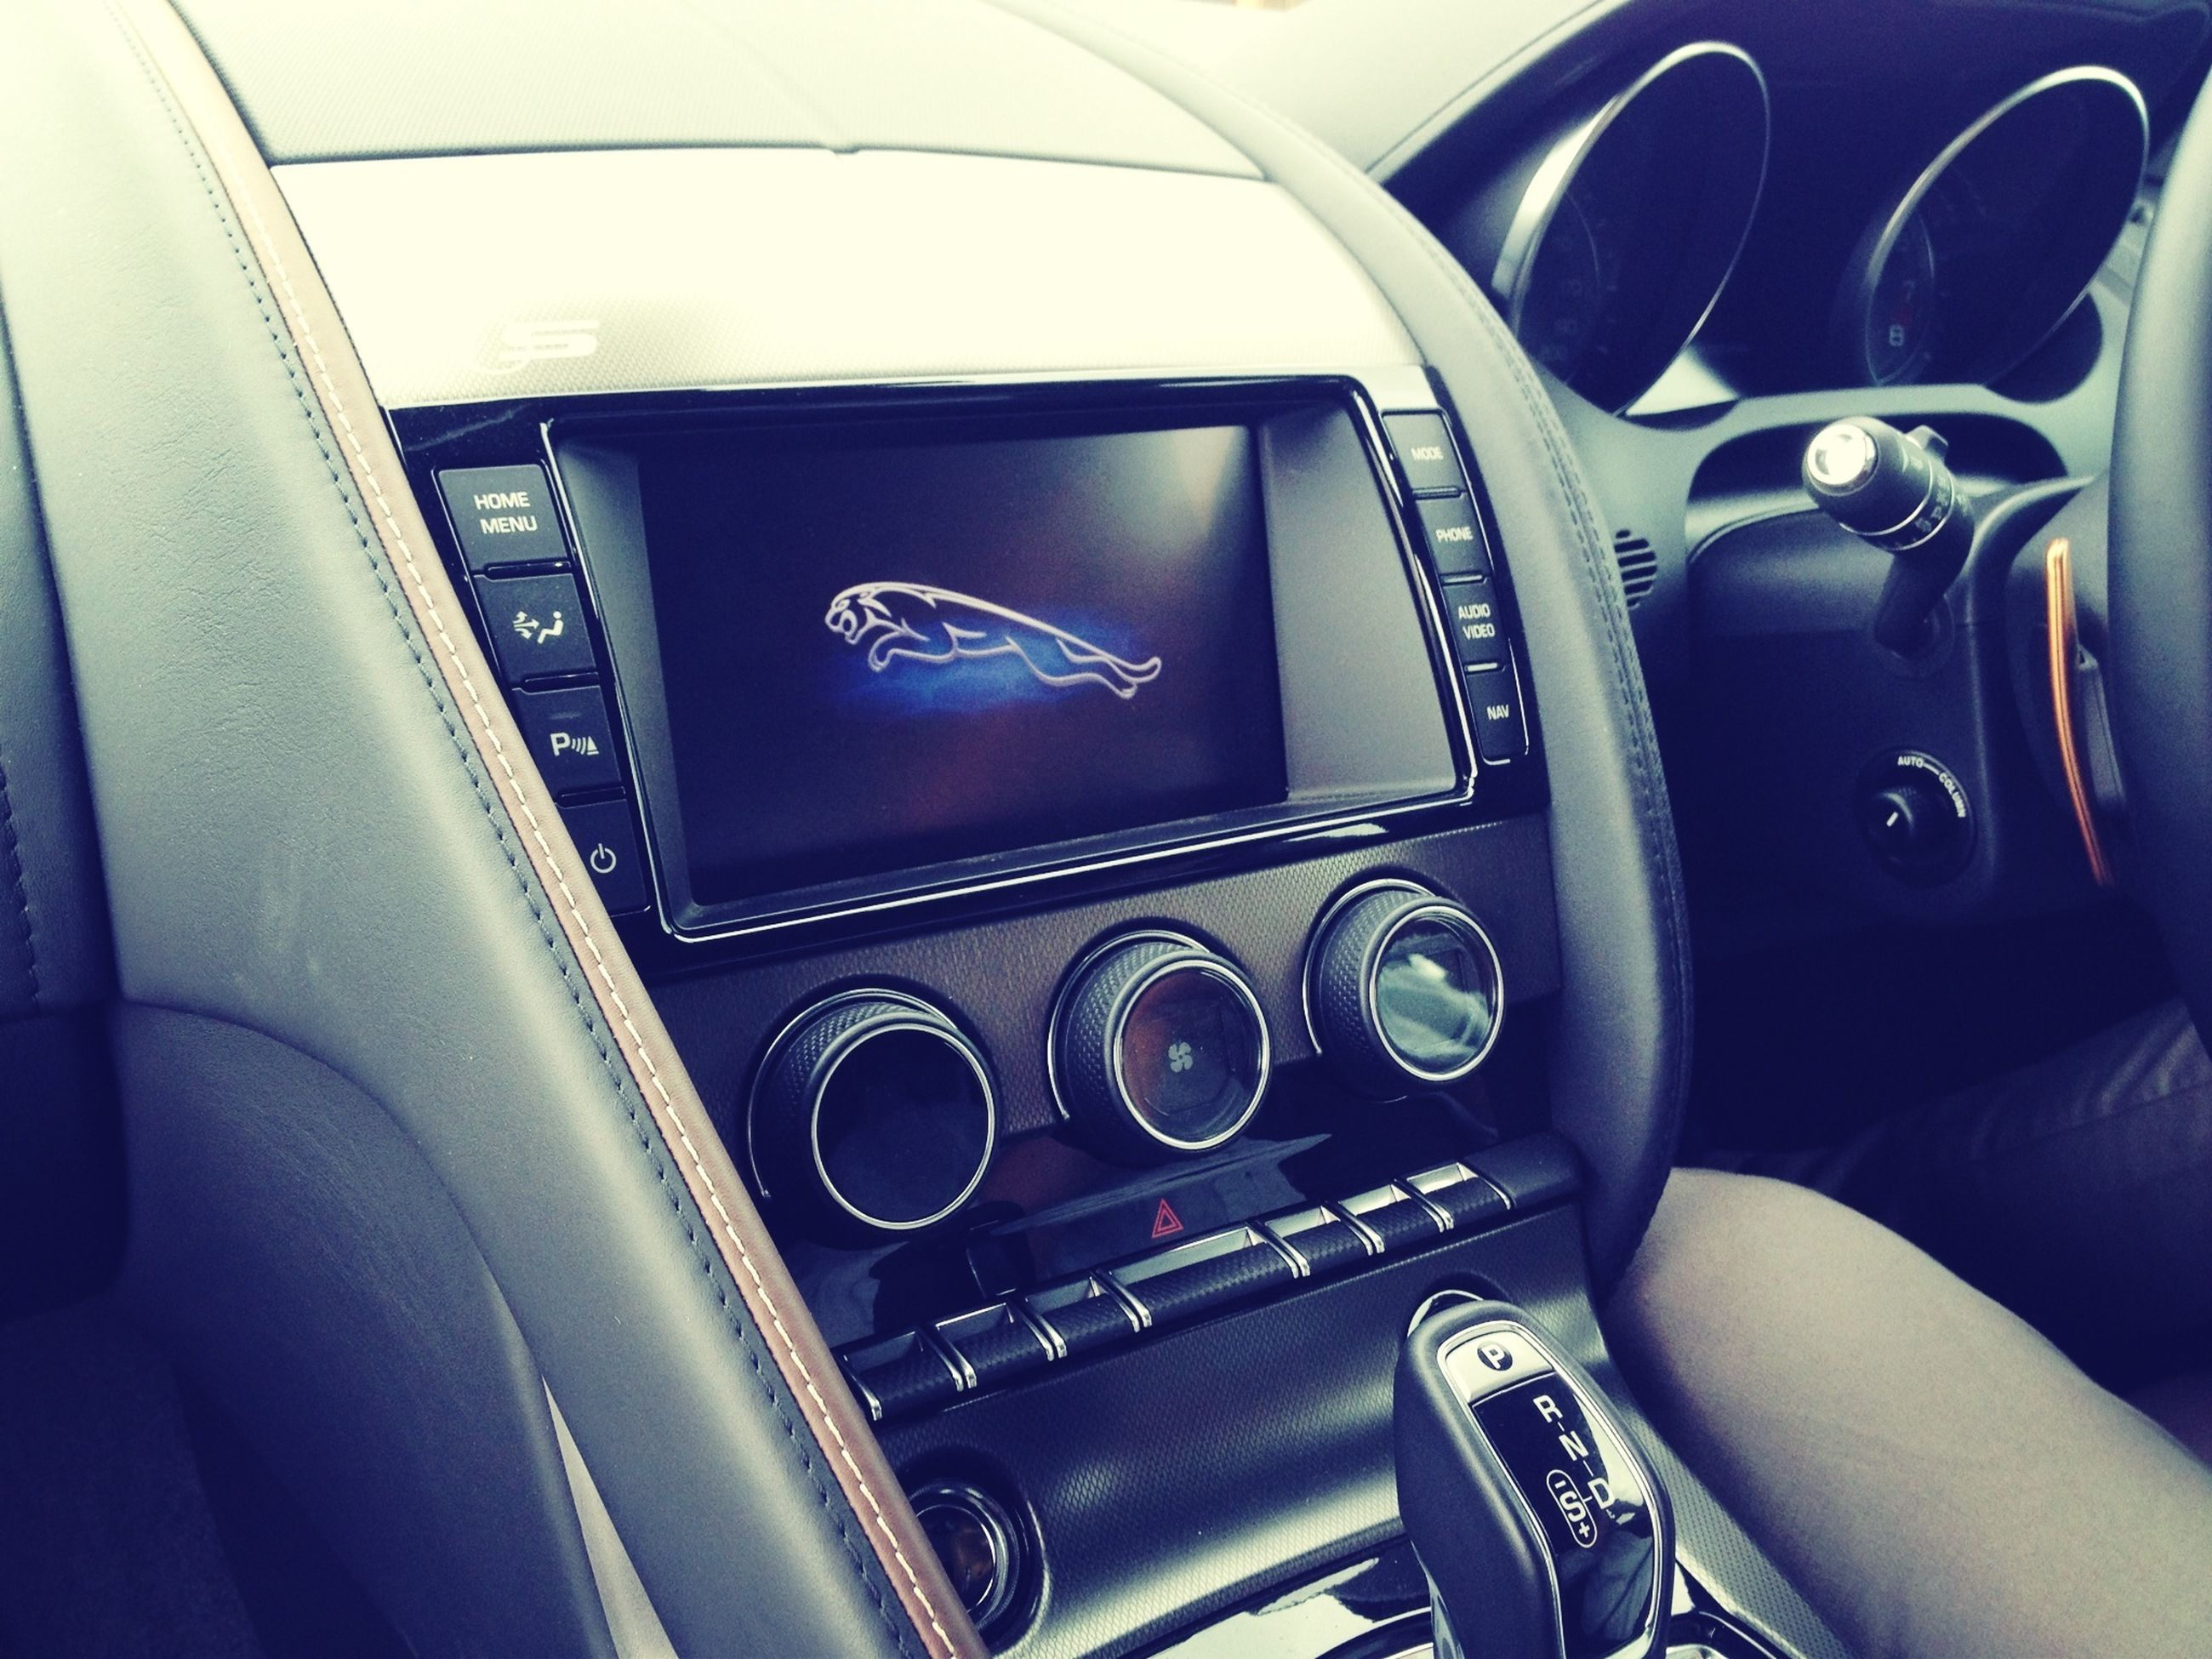 transportation, mode of transport, vehicle interior, land vehicle, car, indoors, car interior, travel, vehicle seat, technology, part of, close-up, dashboard, steering wheel, windshield, journey, vehicle part, train - vehicle, cropped, connection